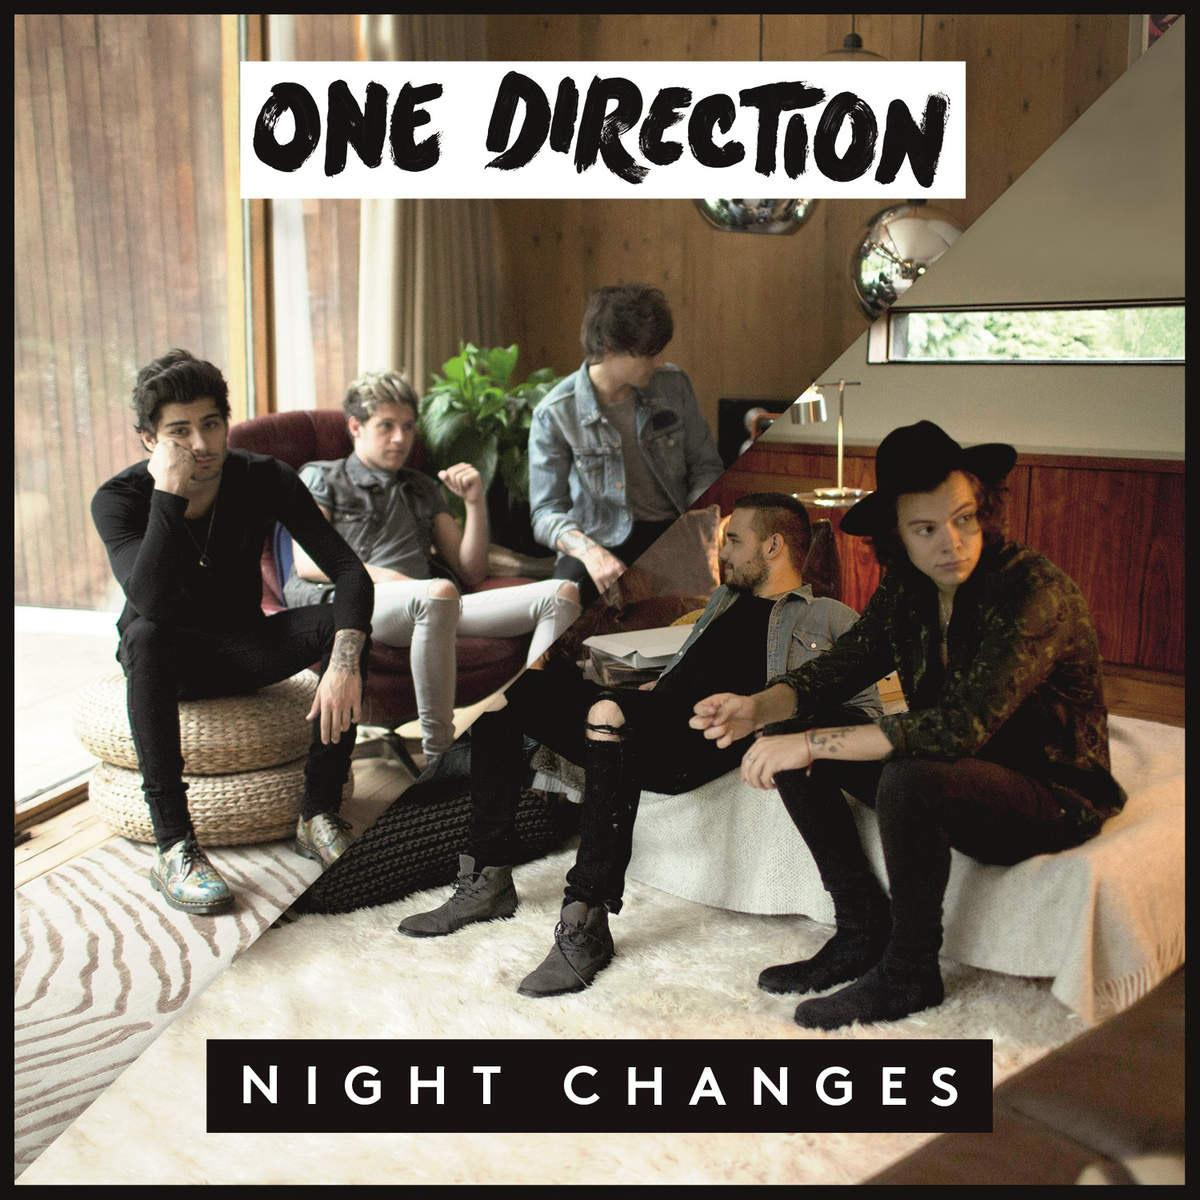 #NightChanges is going in @onedirection – up up UP! It zooms 31 places to break into the Top 40 at #23 #OfficialChart http://t.co/fvW2T49ToY